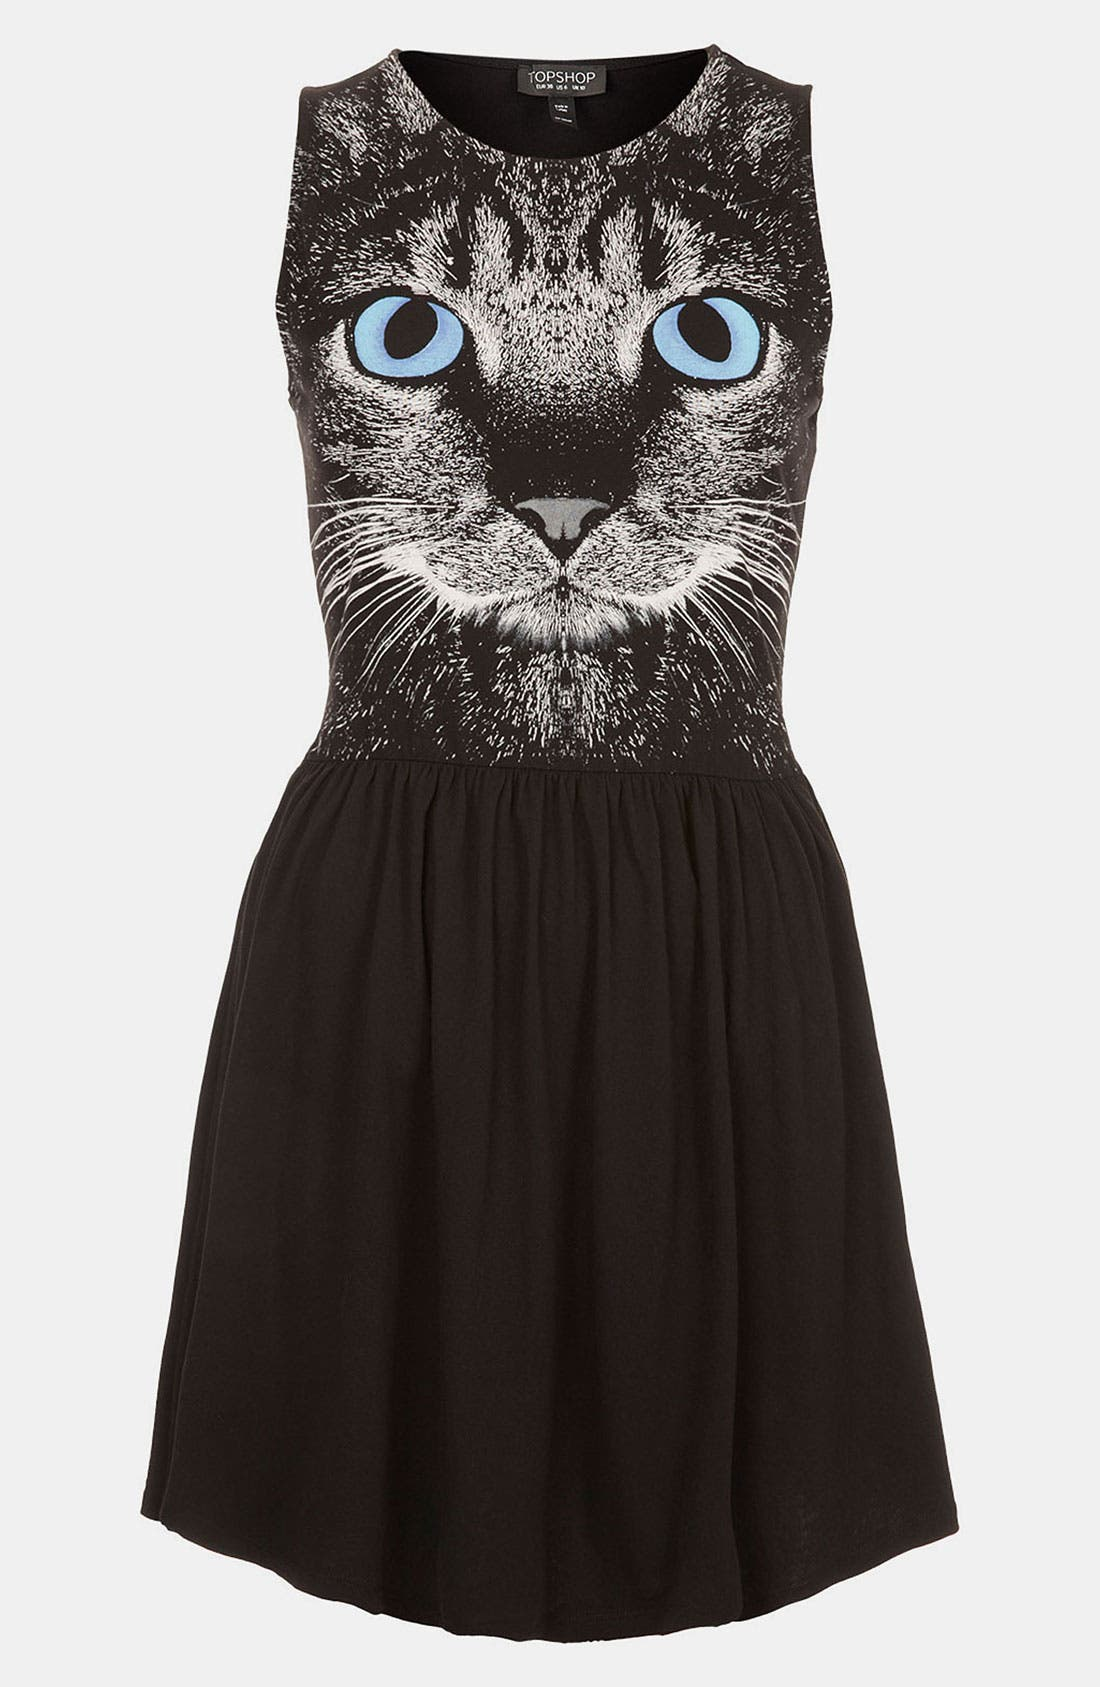 Main Image - Topshop Cat Graphic Skater Dress